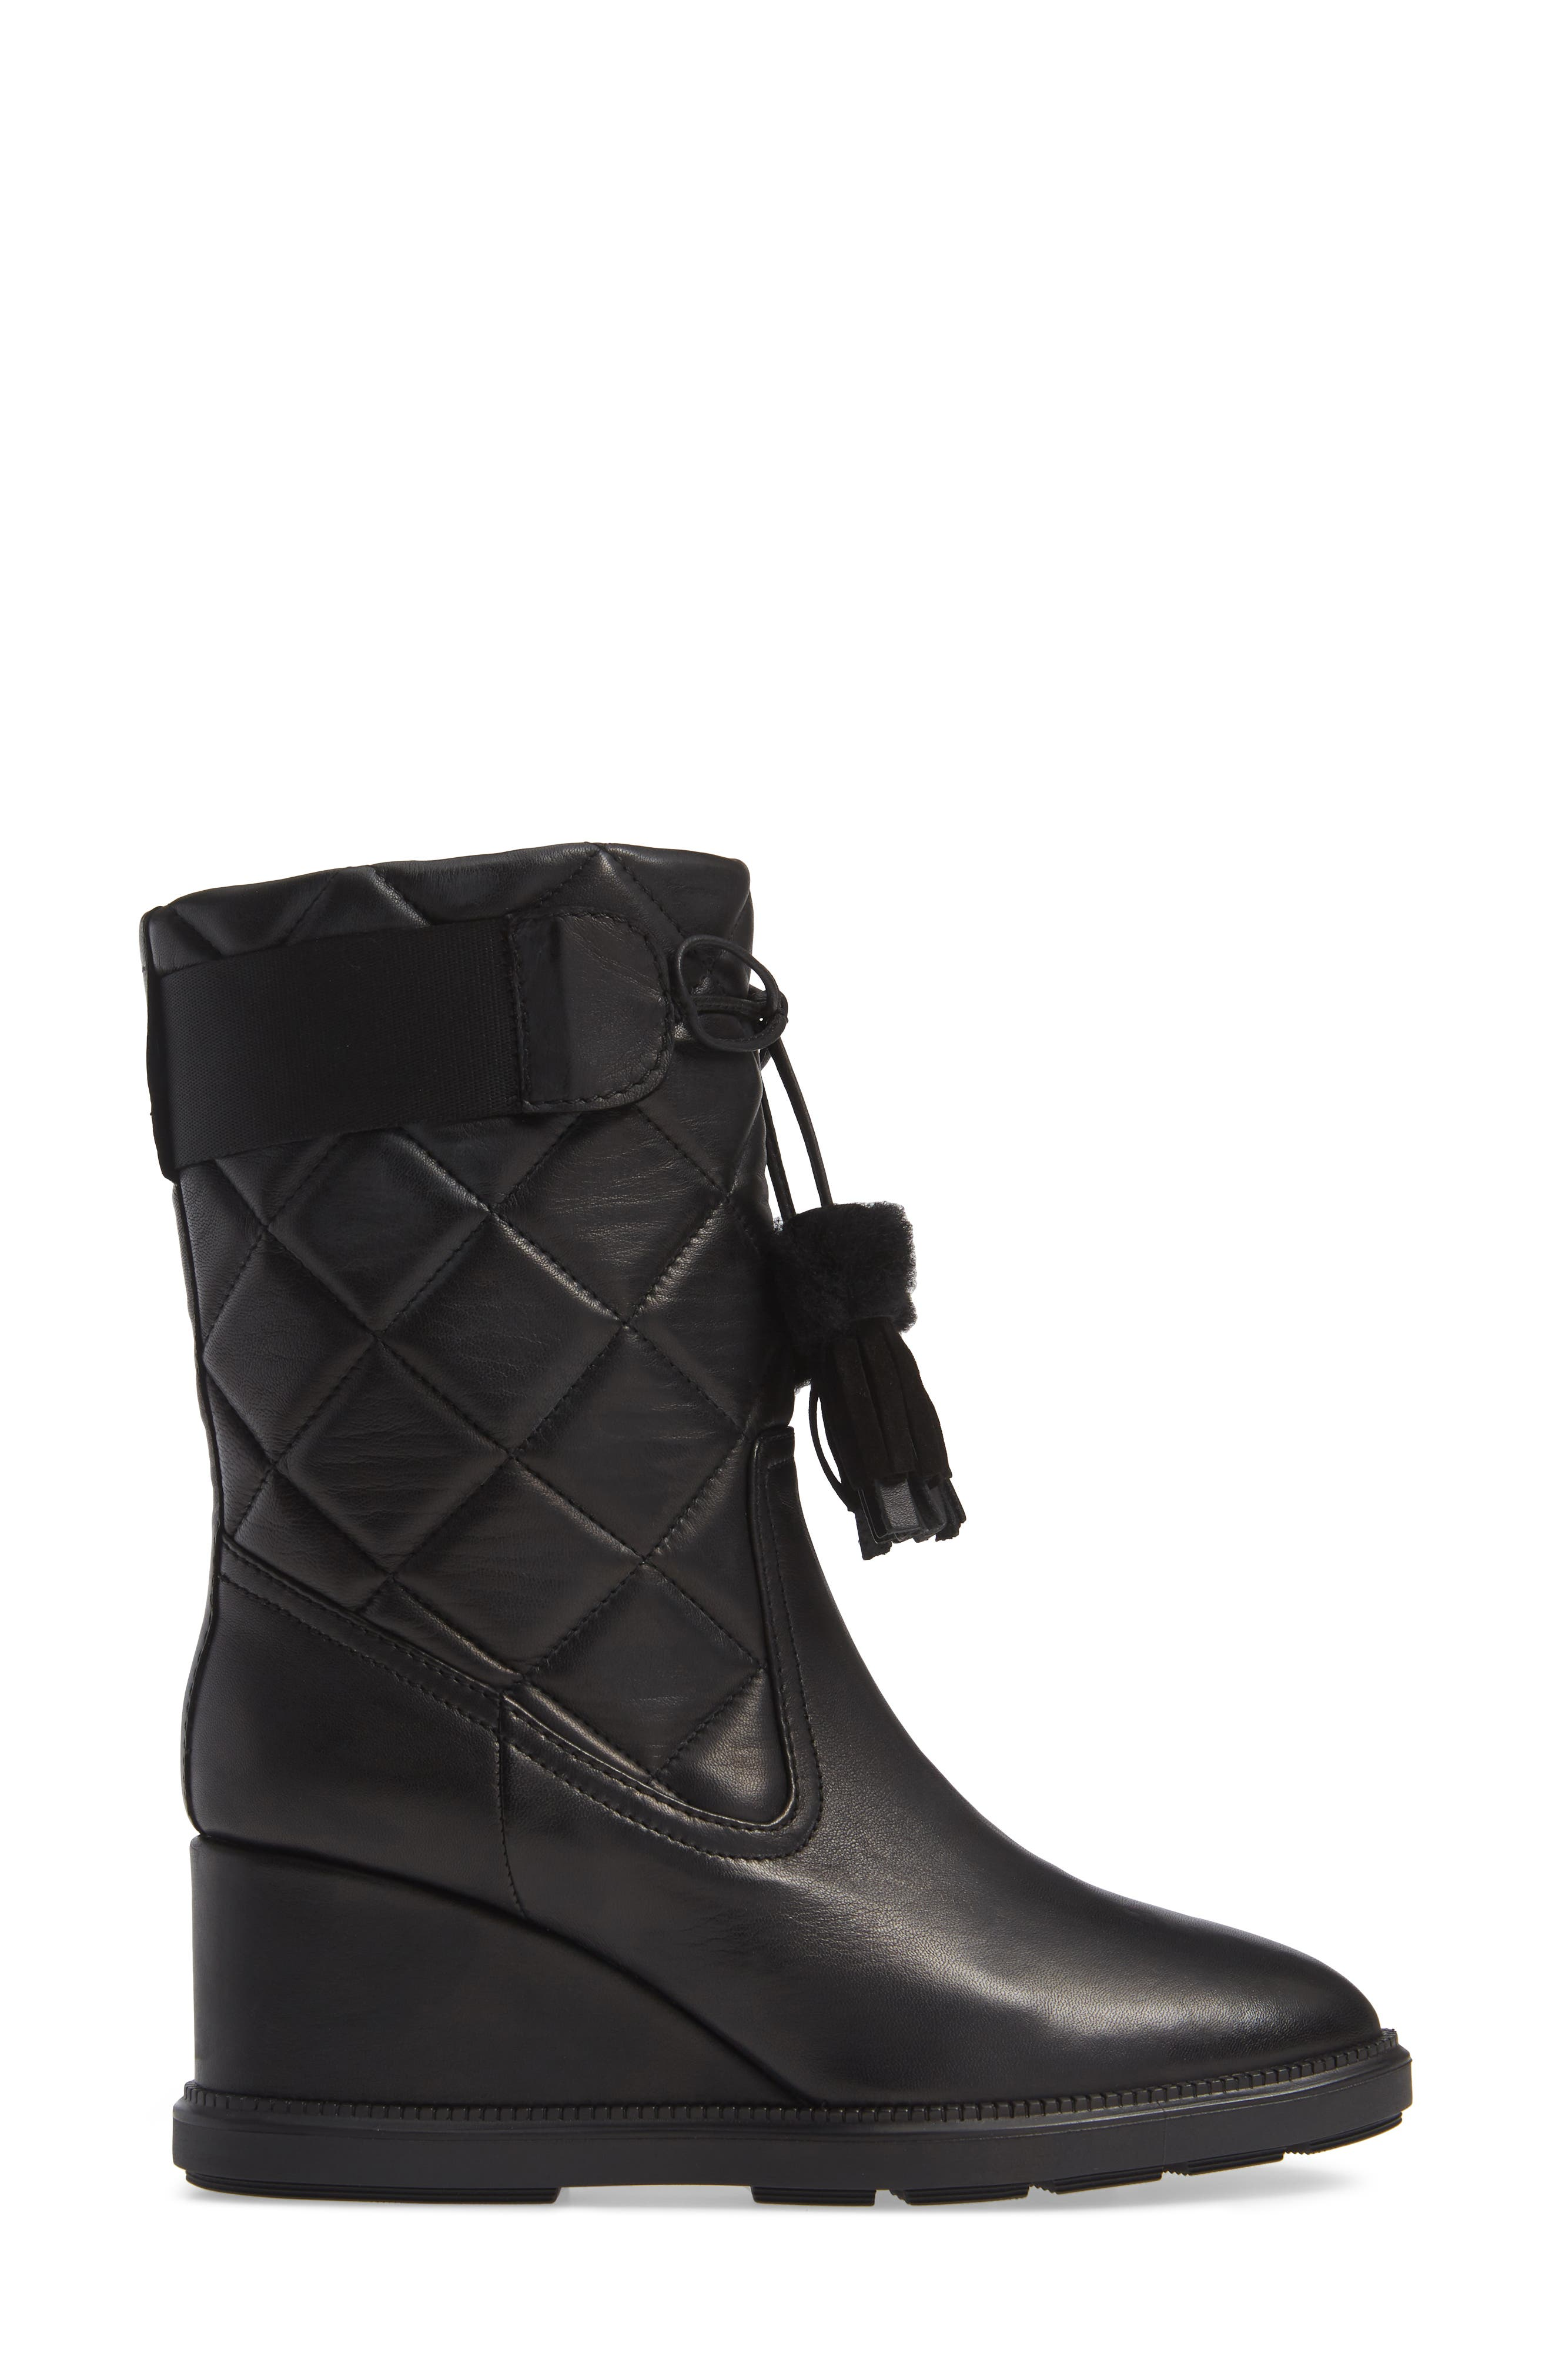 Caliana Water Resistant Genuine Shearling Lined Boot,                             Alternate thumbnail 3, color,                             BLACK NAPPA